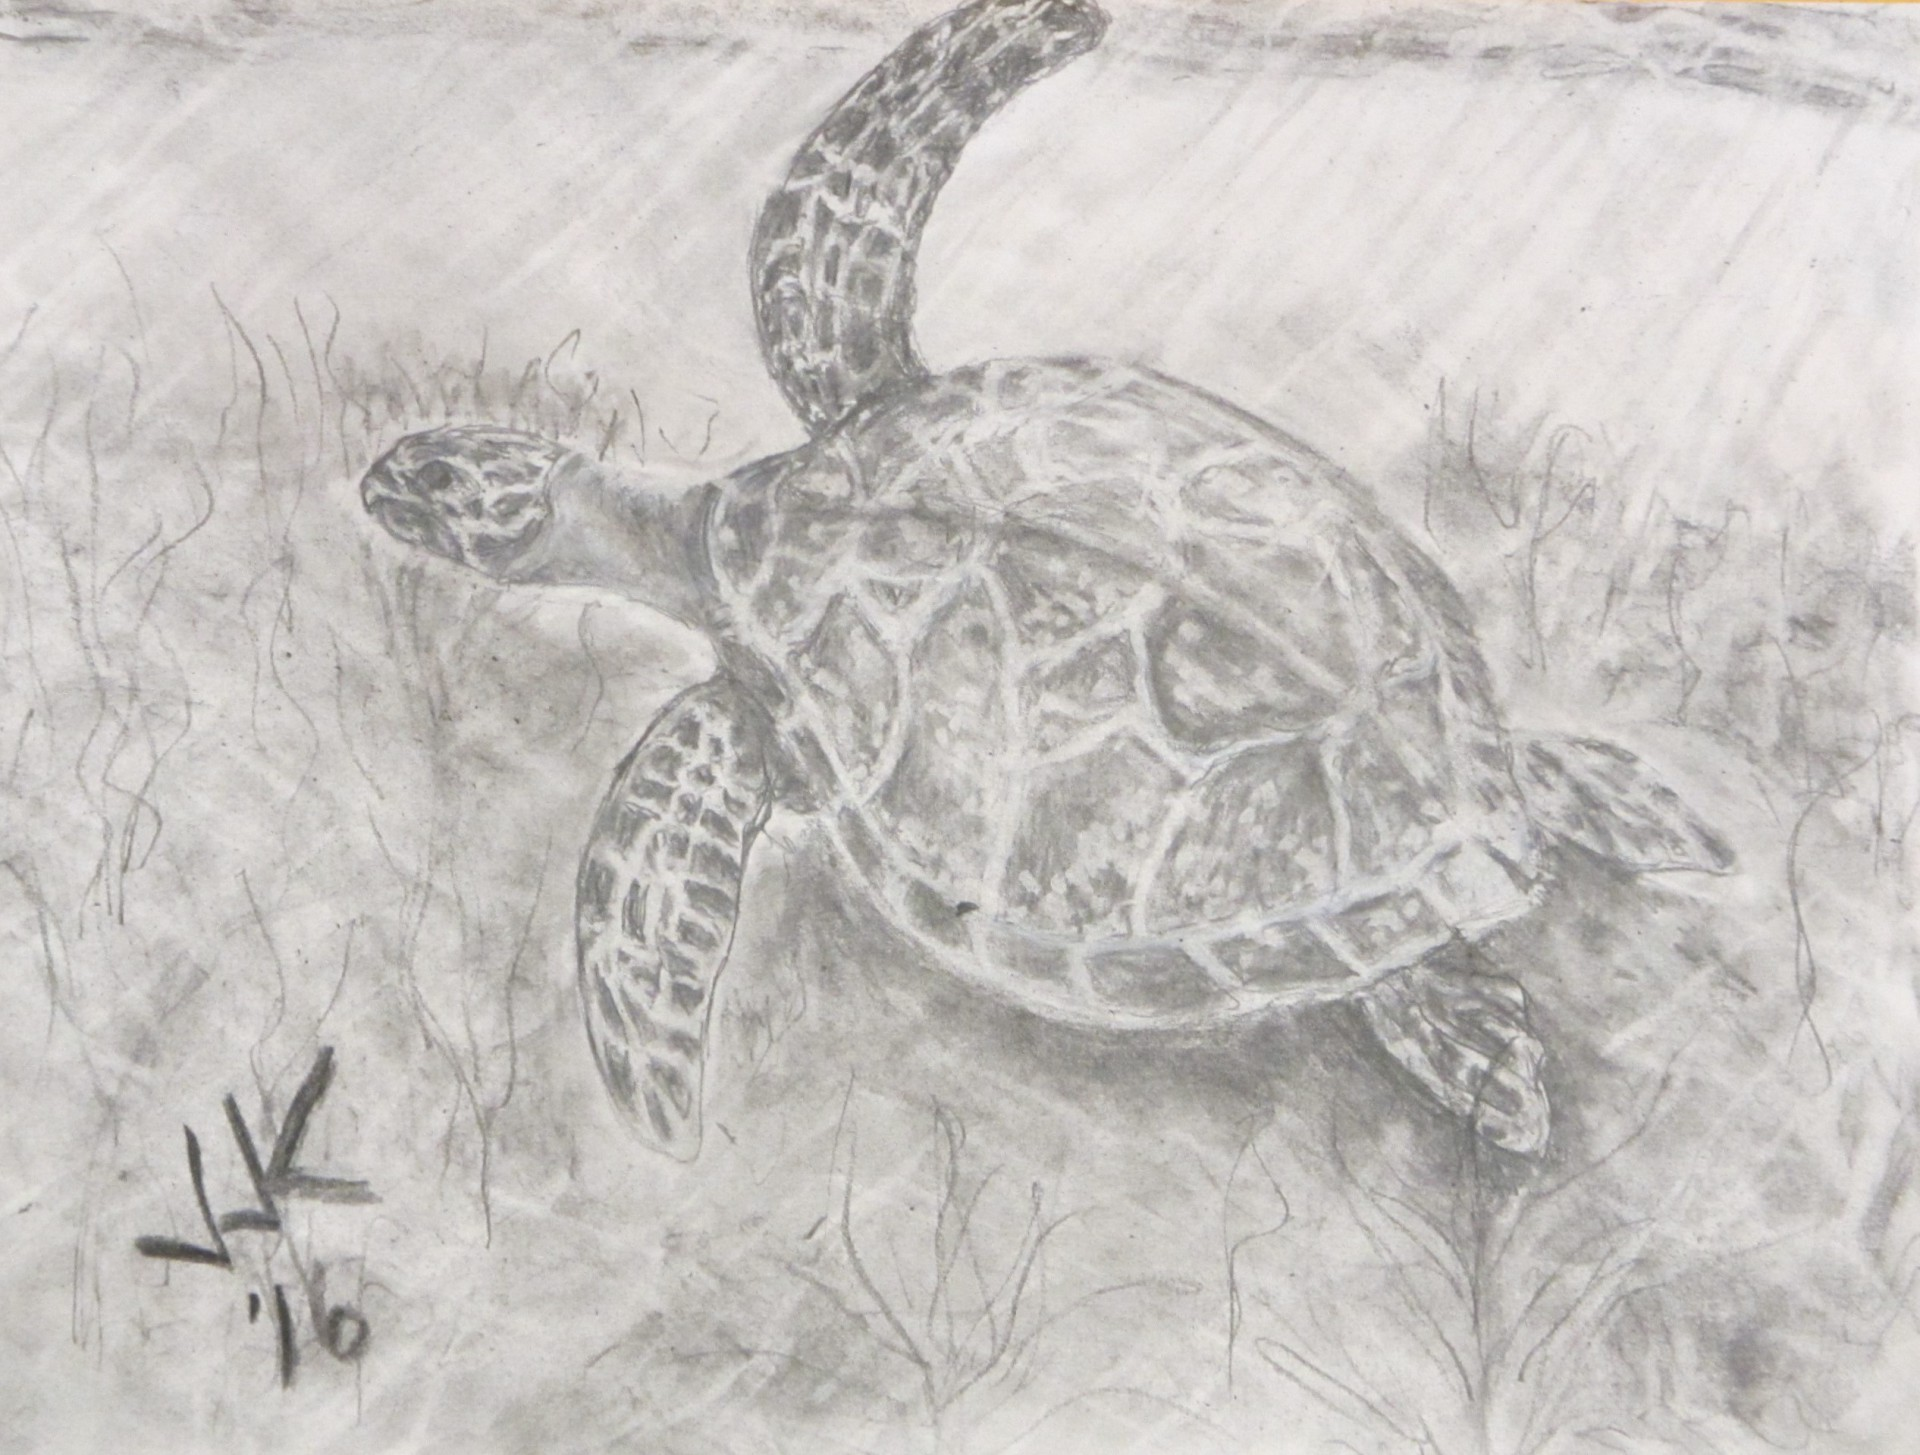 Pencil drawing of a sea turtle under water.